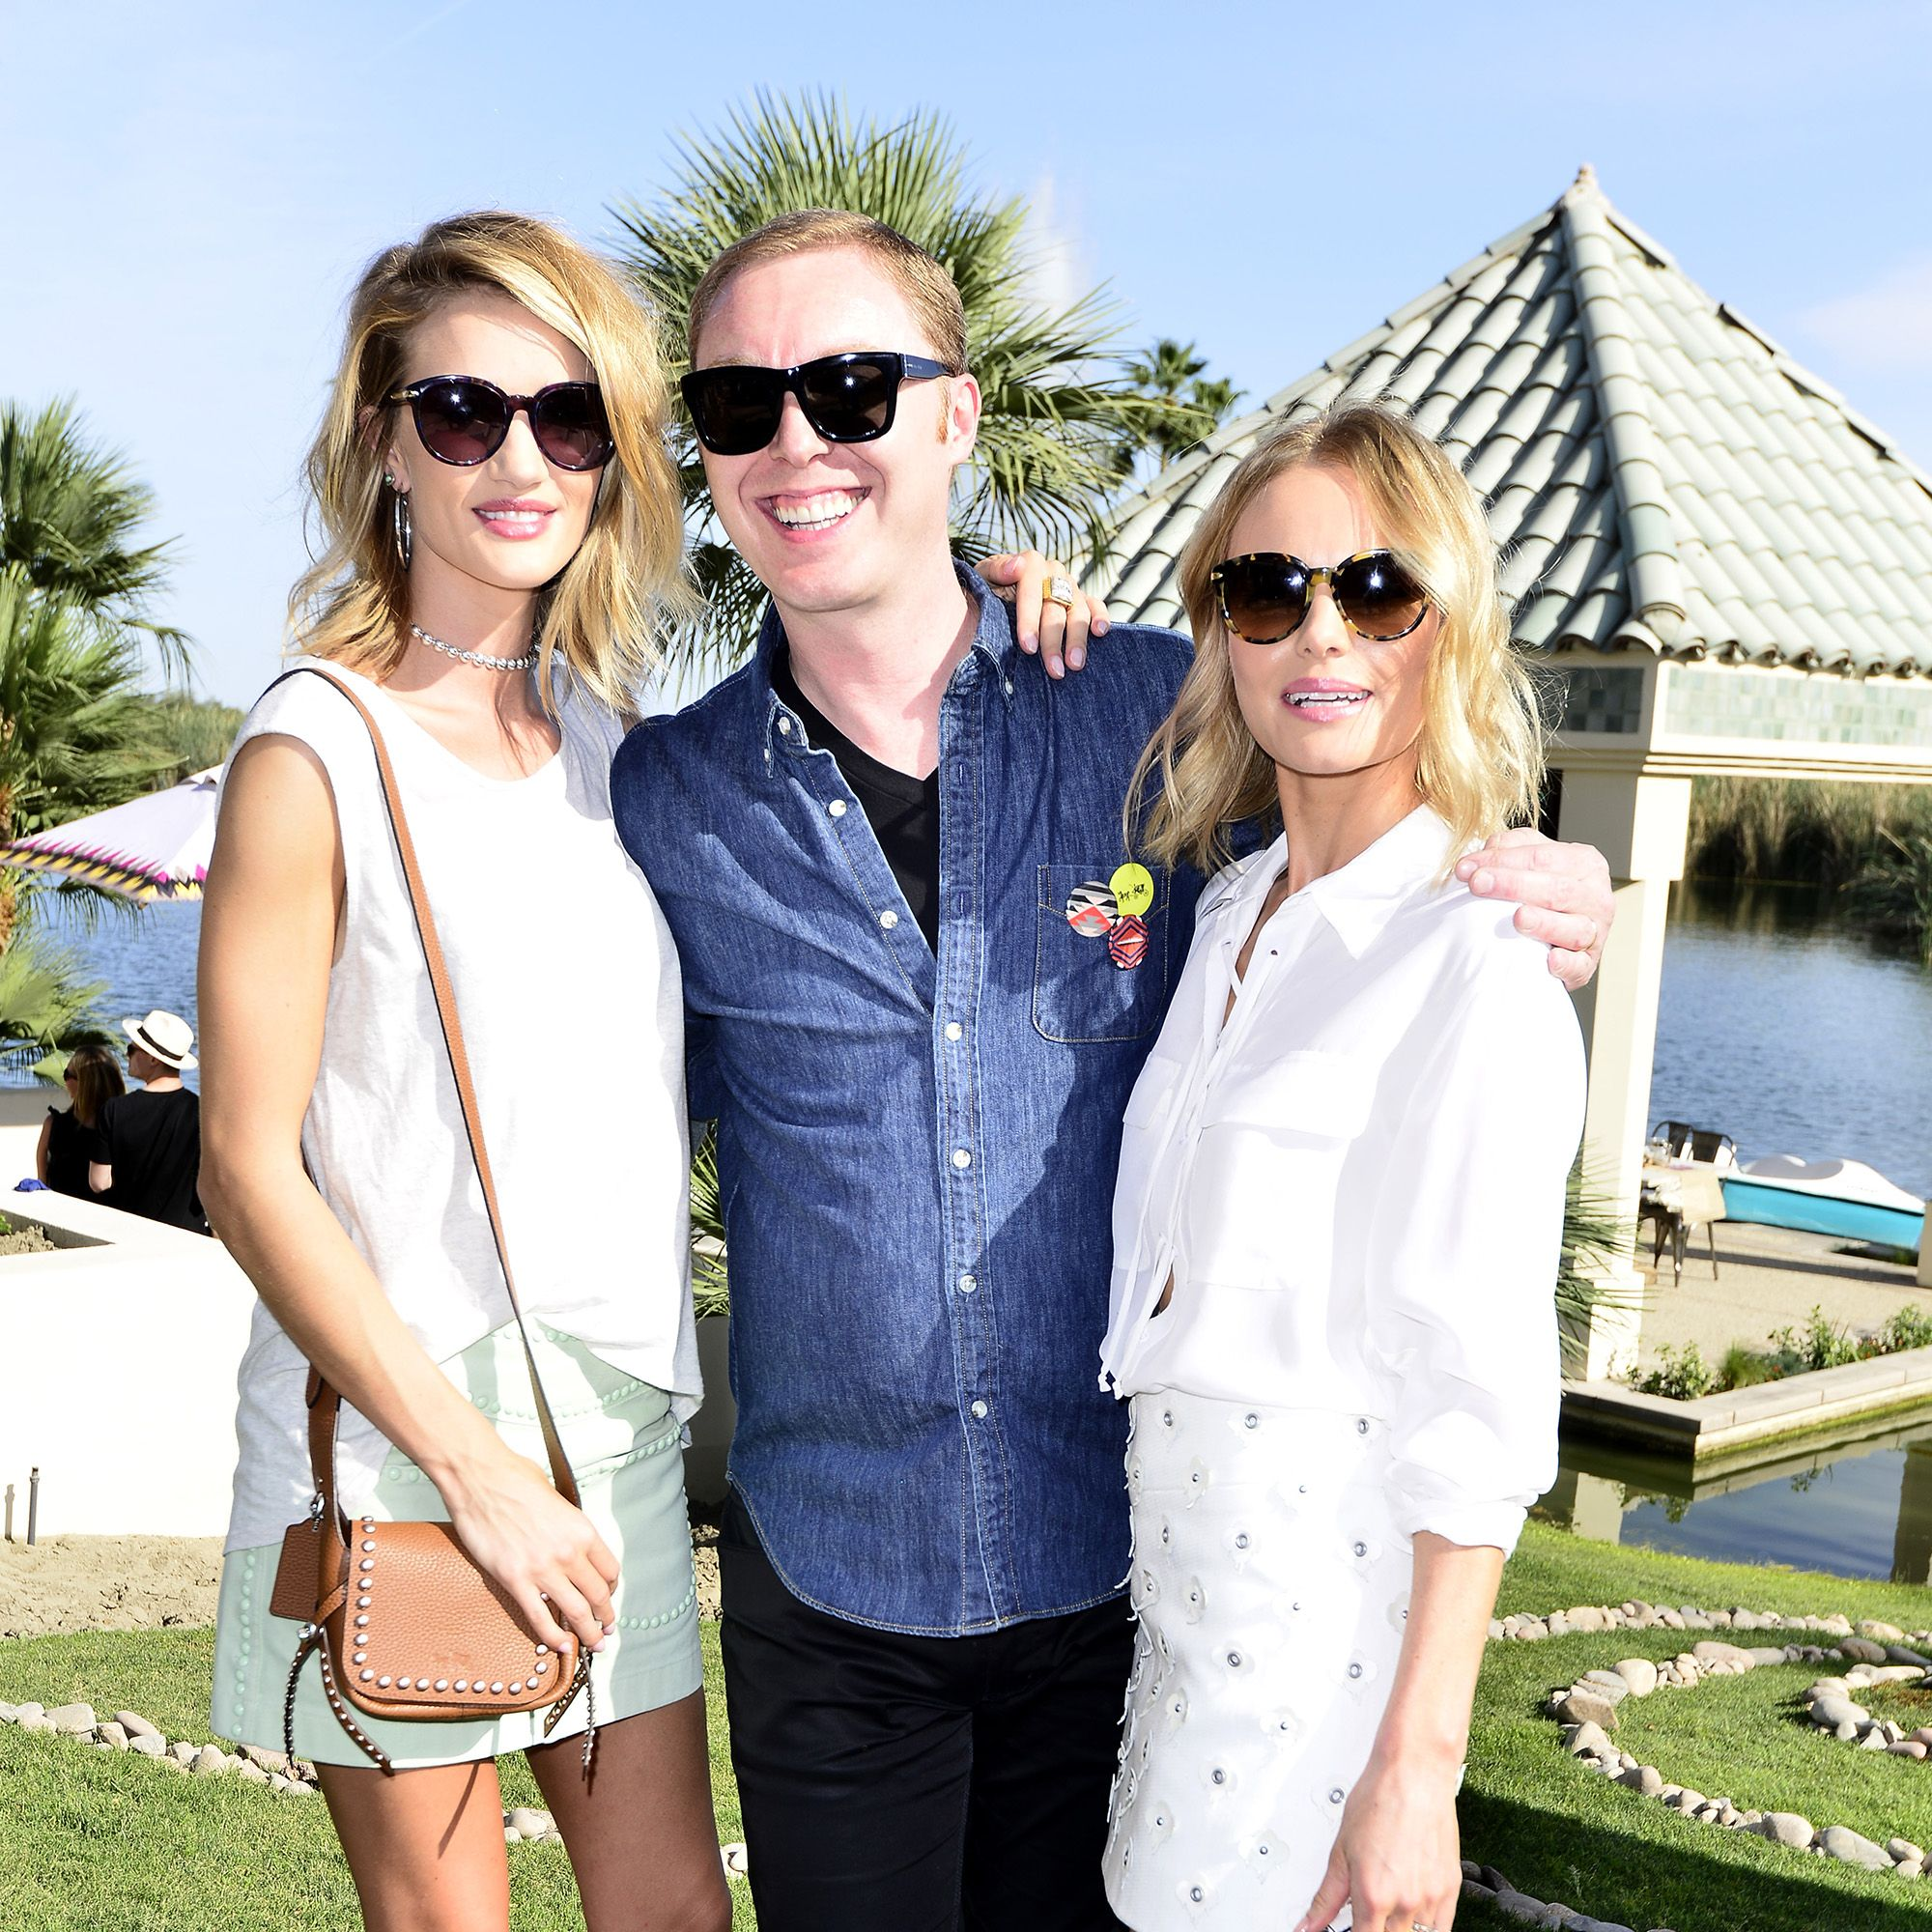 LA QUINTA, CA - APRIL 10: Model Rosie Huntington-Whiteley, Coach Executive Creative Director Stuart Vevers and actress Kate Bosworth   attend Coach Backstage at Soho Desert House on April 10, 2015 in La Quinta, California.  (Photo by Jerod Harris/Getty Images for Coach)